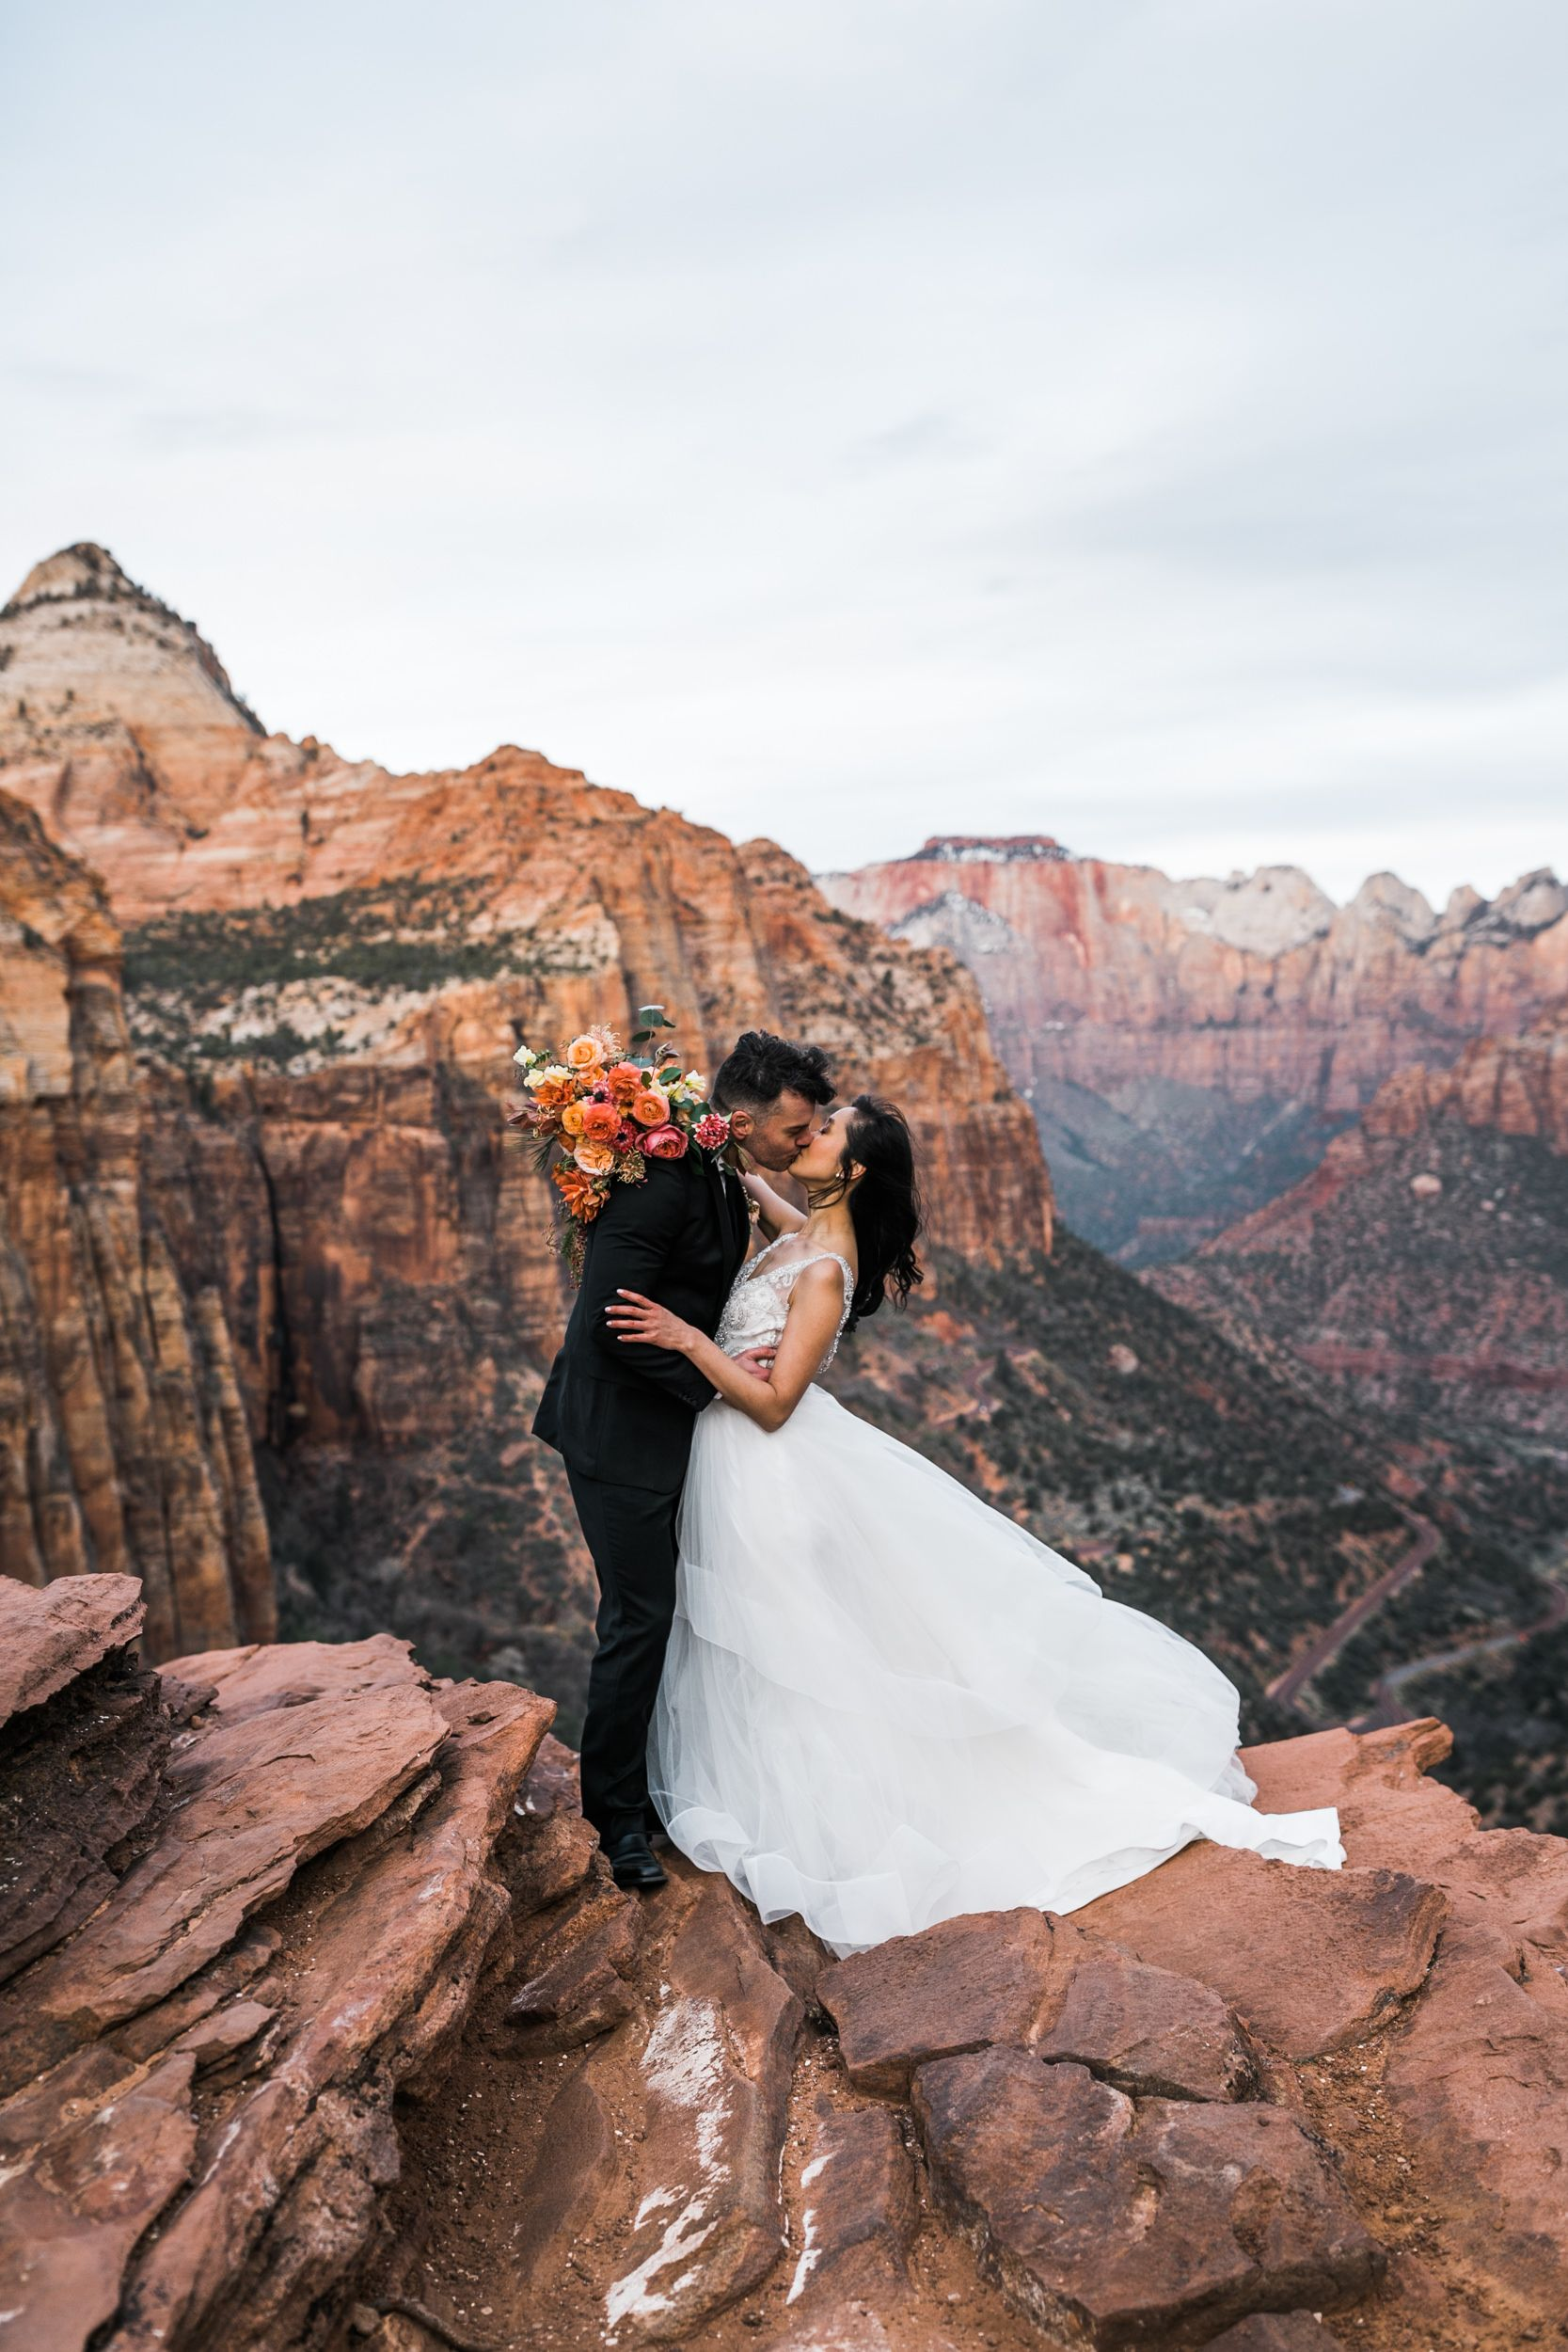 Zion National Park Elopement Utah Adventure Wedding Inspiration Adventure Wedding Elopement Photographers In Moab Yosemite And Beyond The Hearnes National Park Wedding Adventure Wedding Elope Wedding